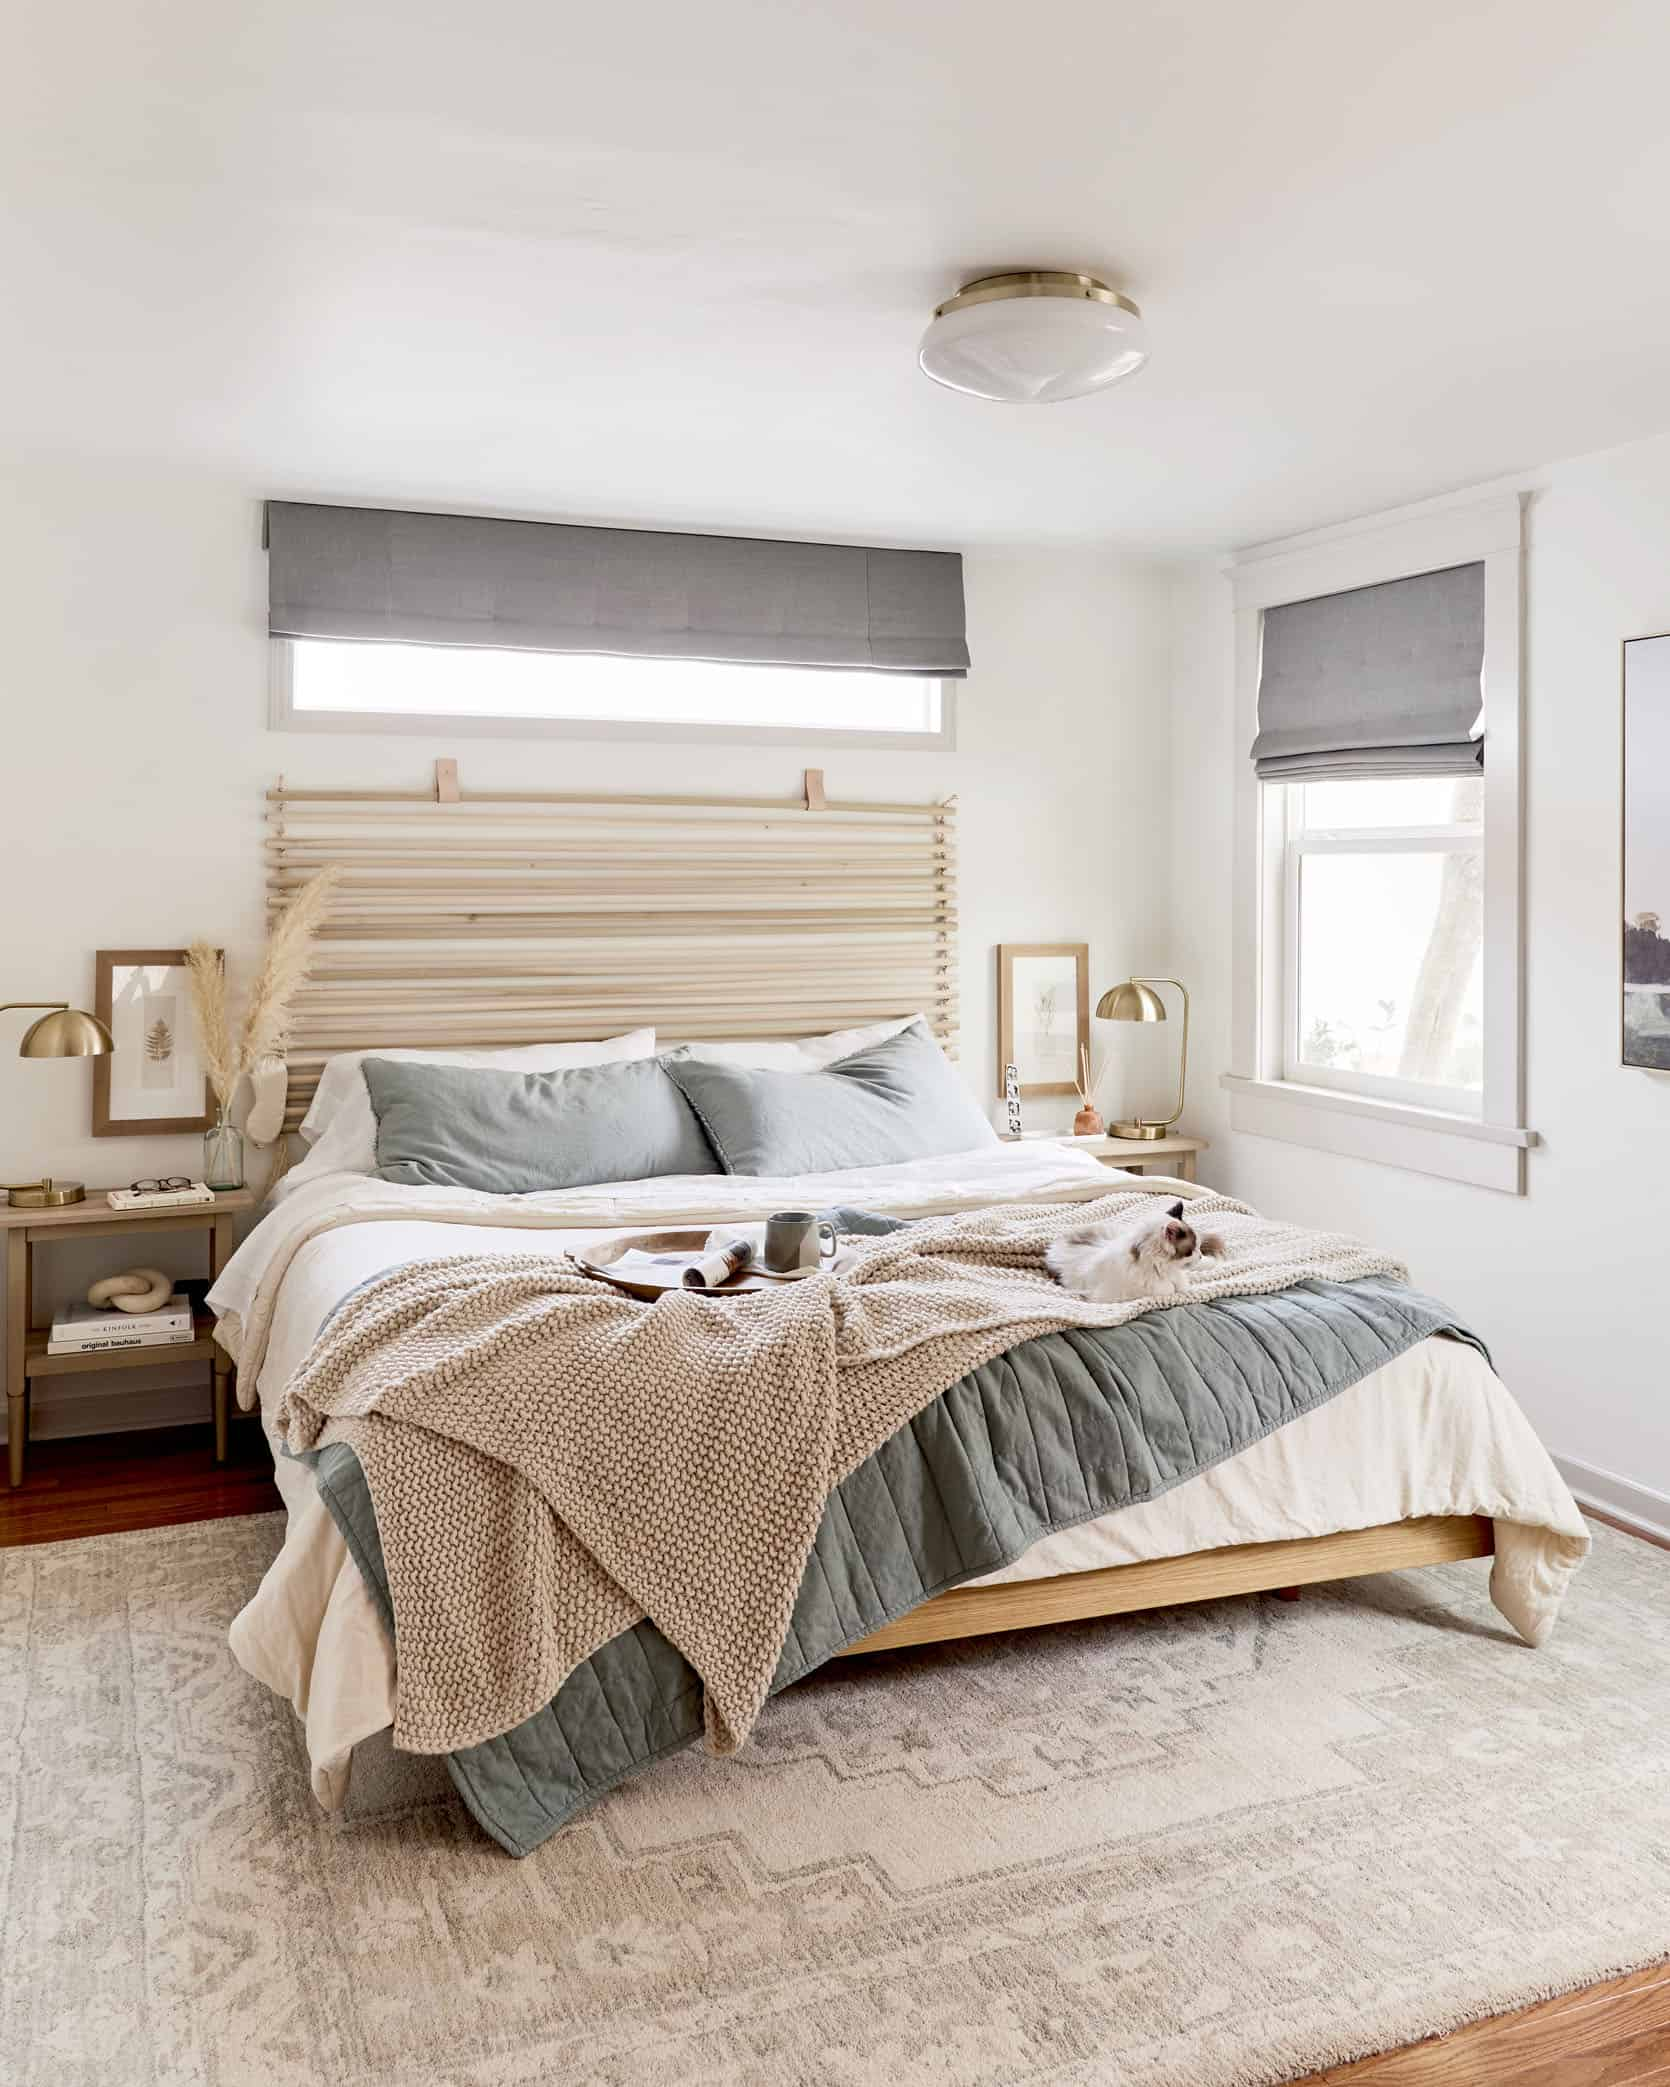 The DIY Headboard You All Wanted To Know About Best Children's Lighting & Home Decor Online Store